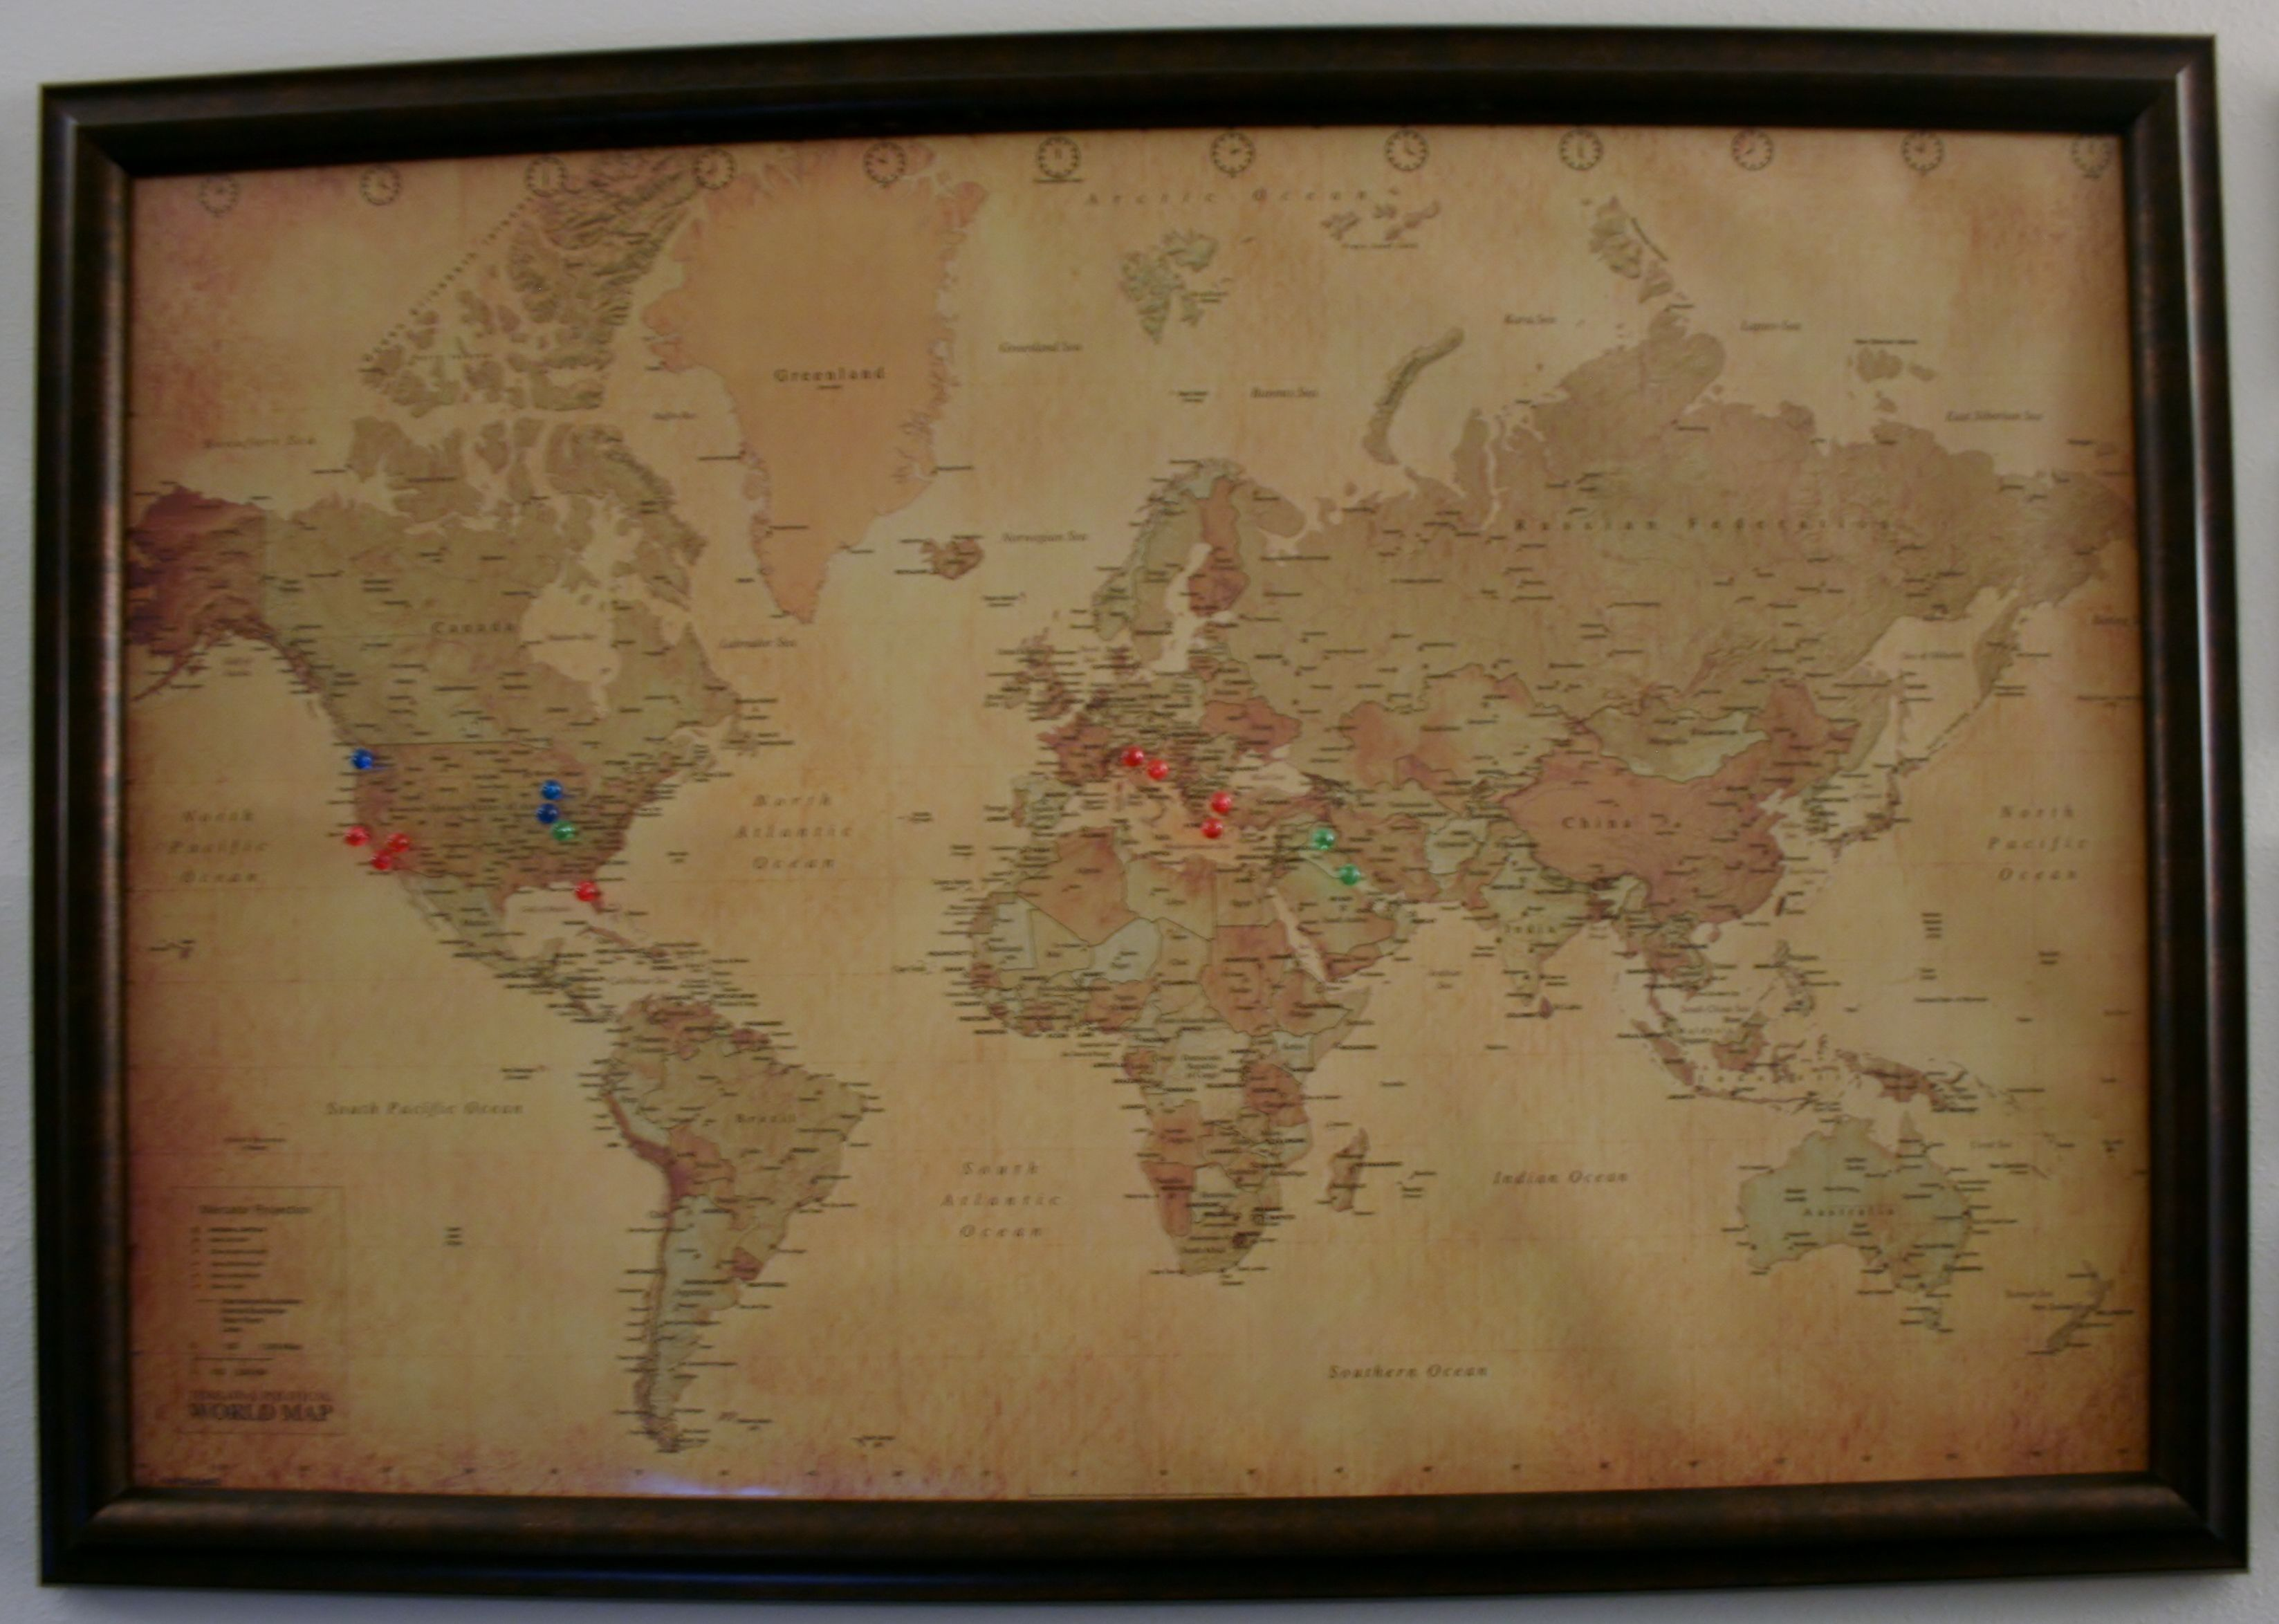 I glued a map to cork board and then framed it we used push pins diy push pin map materials large frame cork laminated map gumiabroncs Choice Image